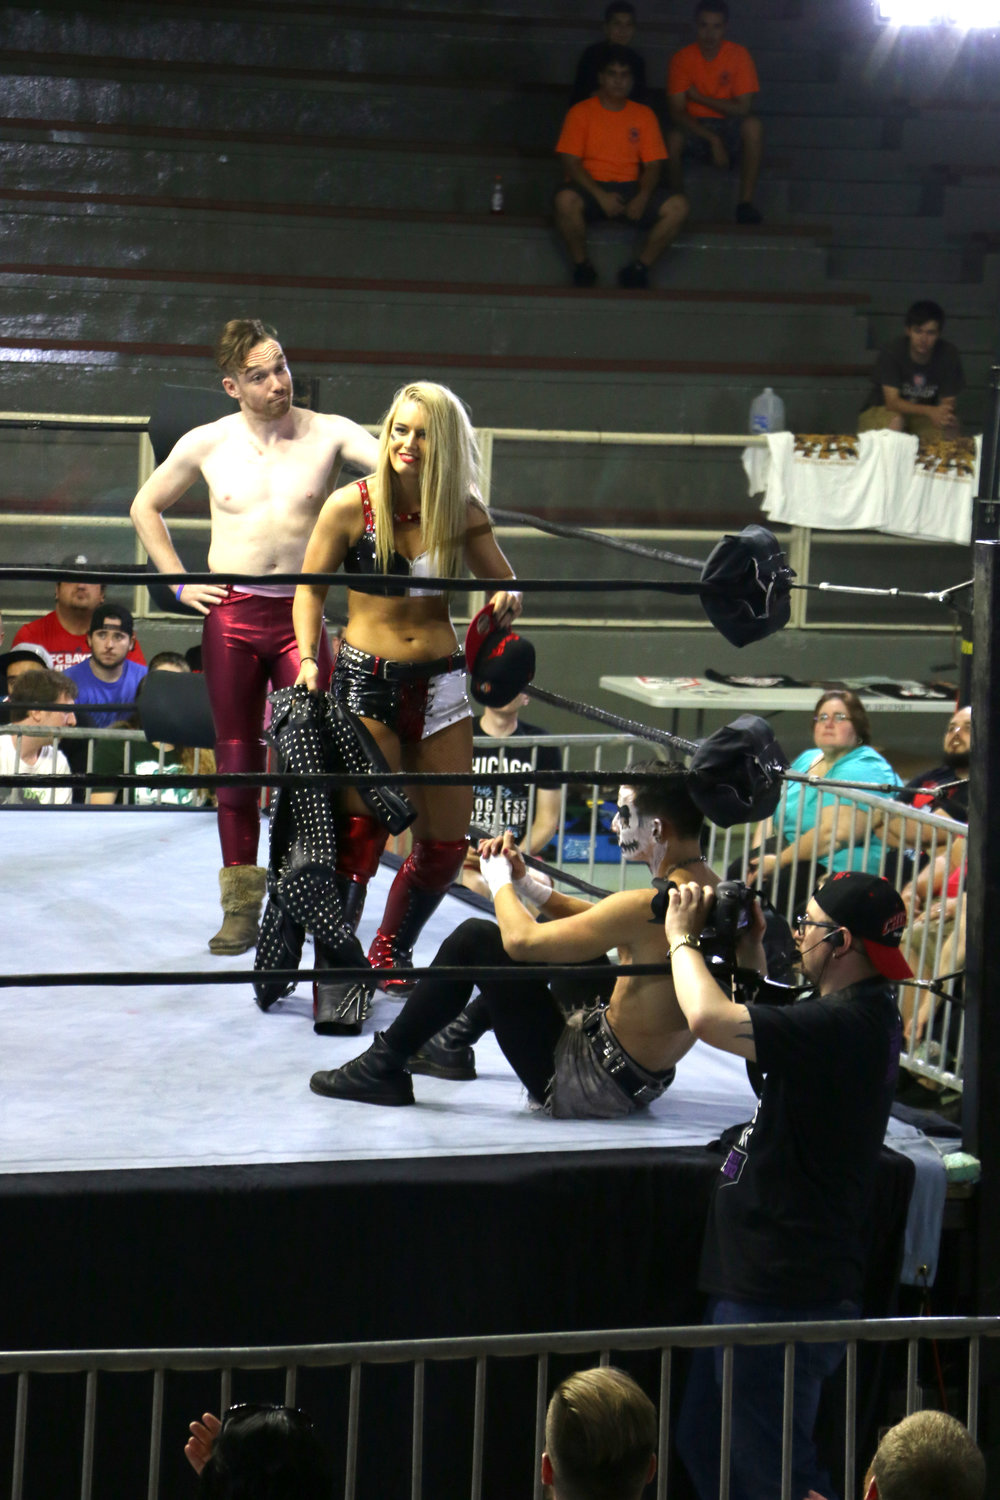 The team of Jack Sexsmith, from left, Toni Storm and Darby Allin gear up for the six-person intergender bout.